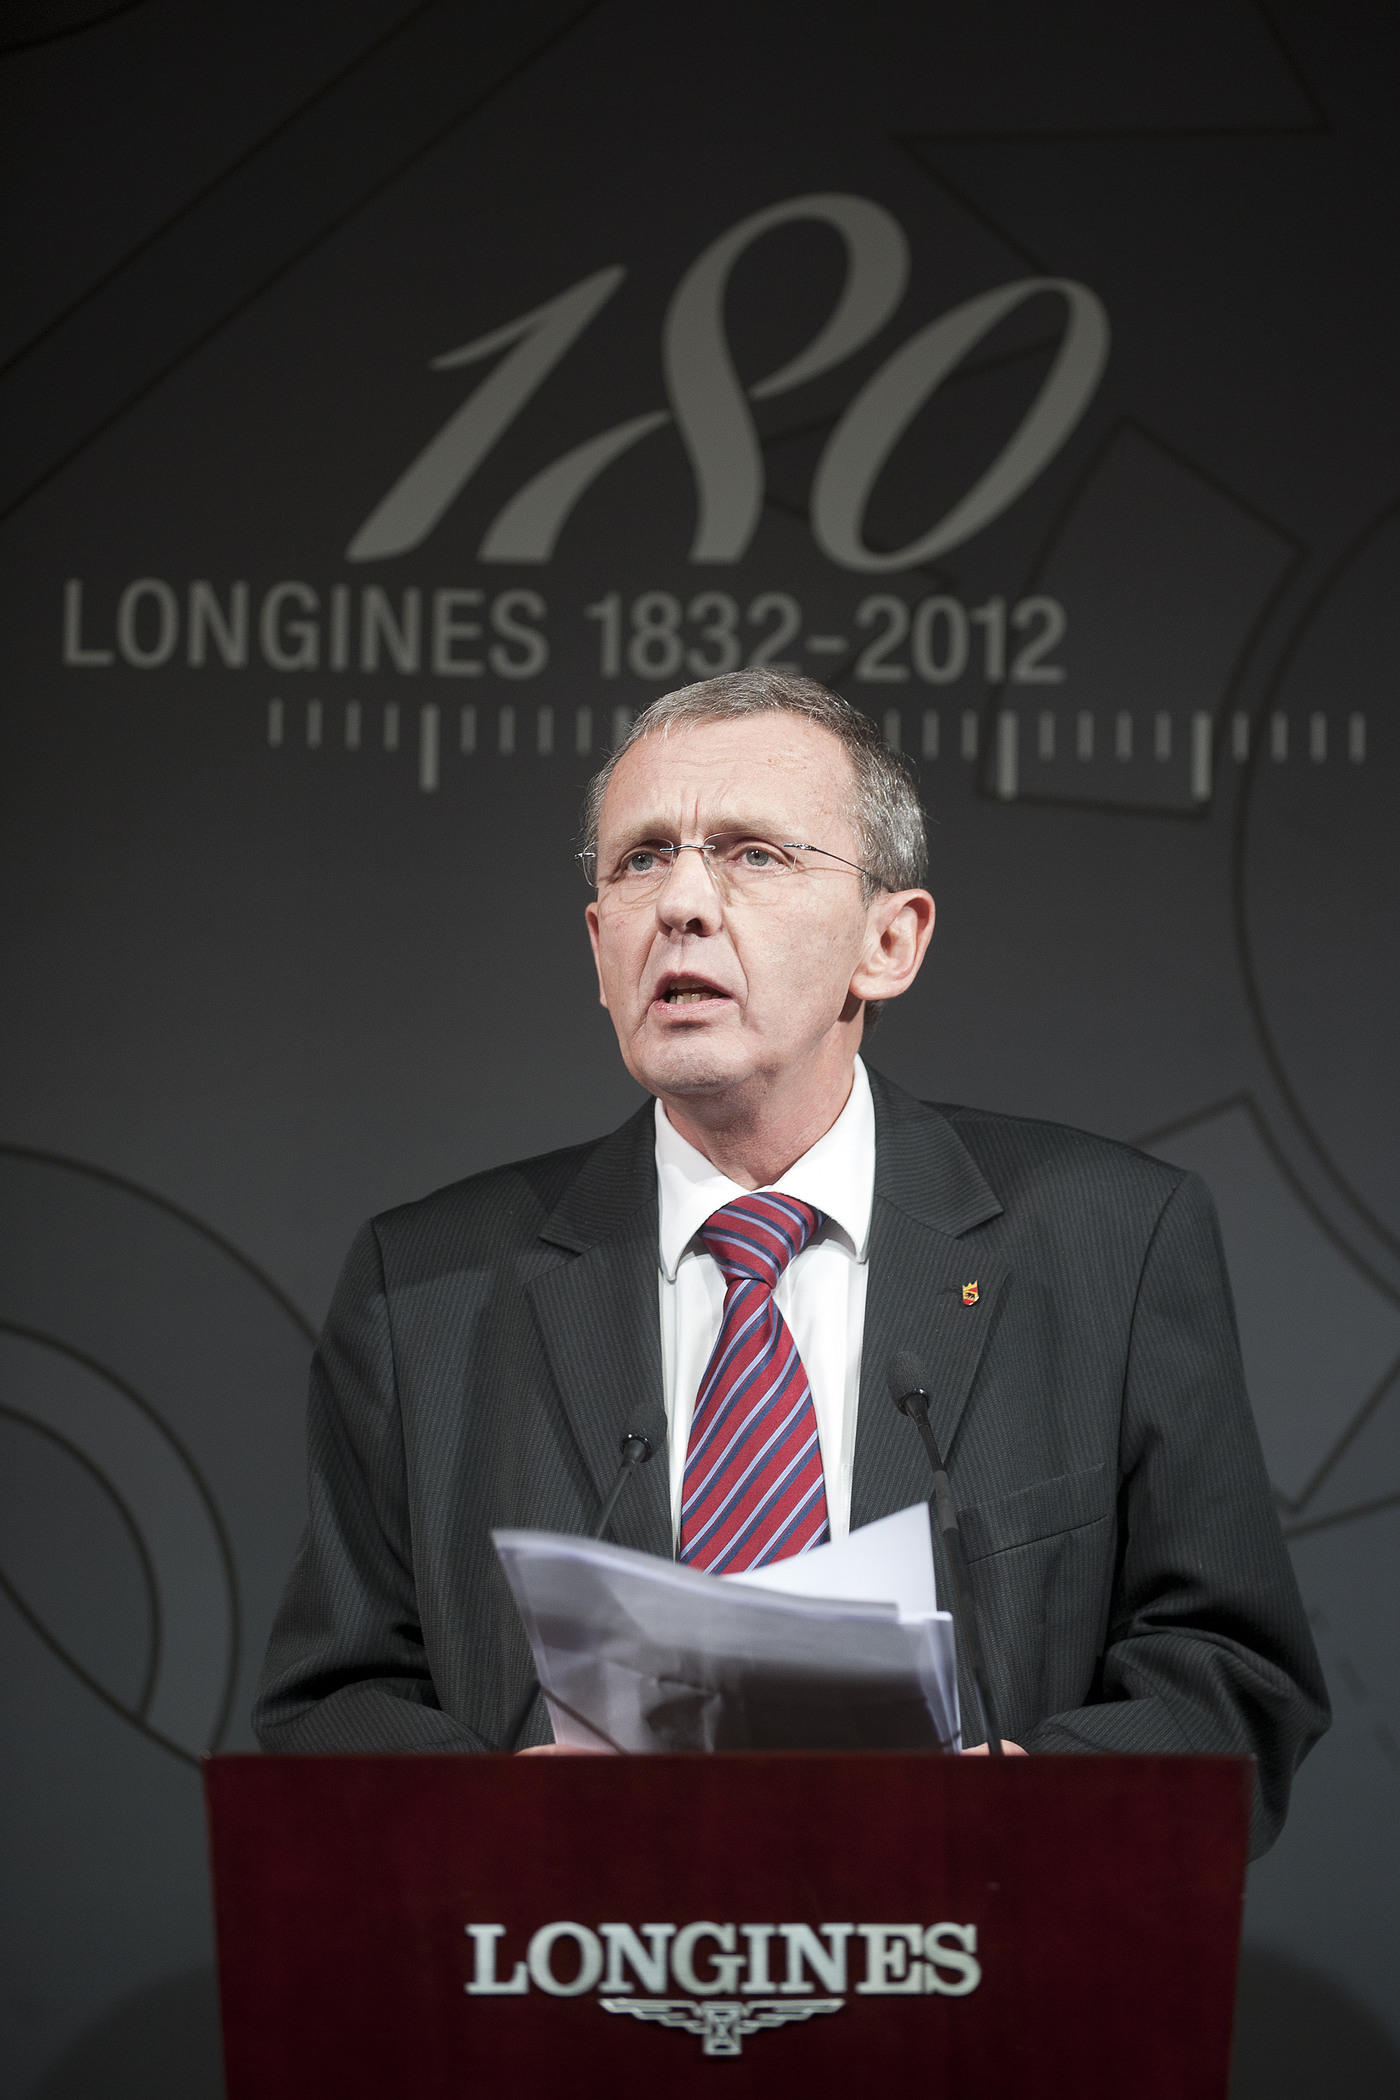 Longines Corporate Event: Longines celebrates its 180th anniversary in Saint-Imier! 11